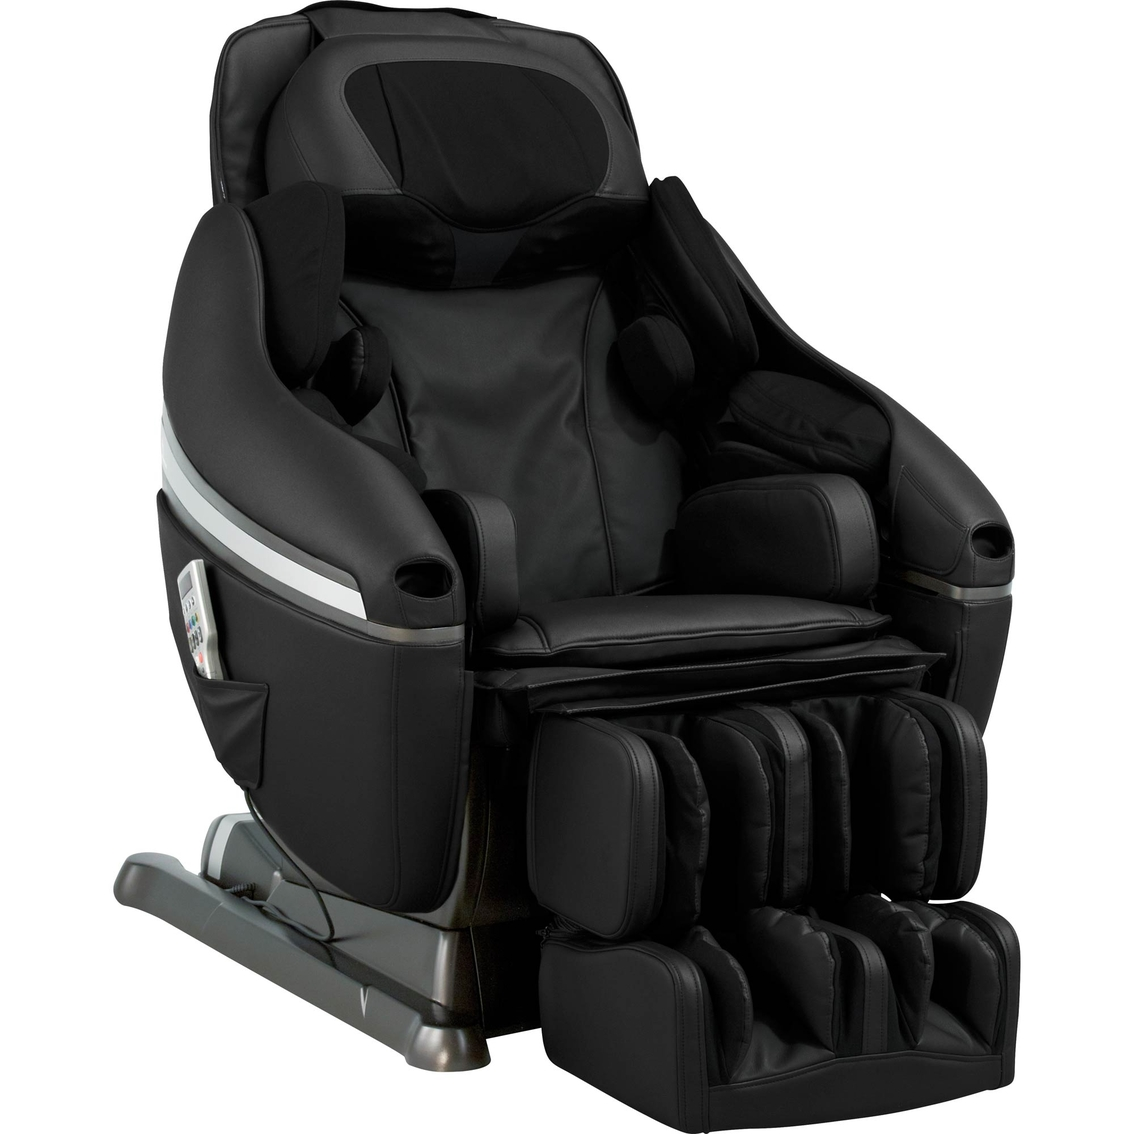 Inada Dreamwave Massage Chair Inada Dreamwave Massage Chair Black Chairs And Recliners